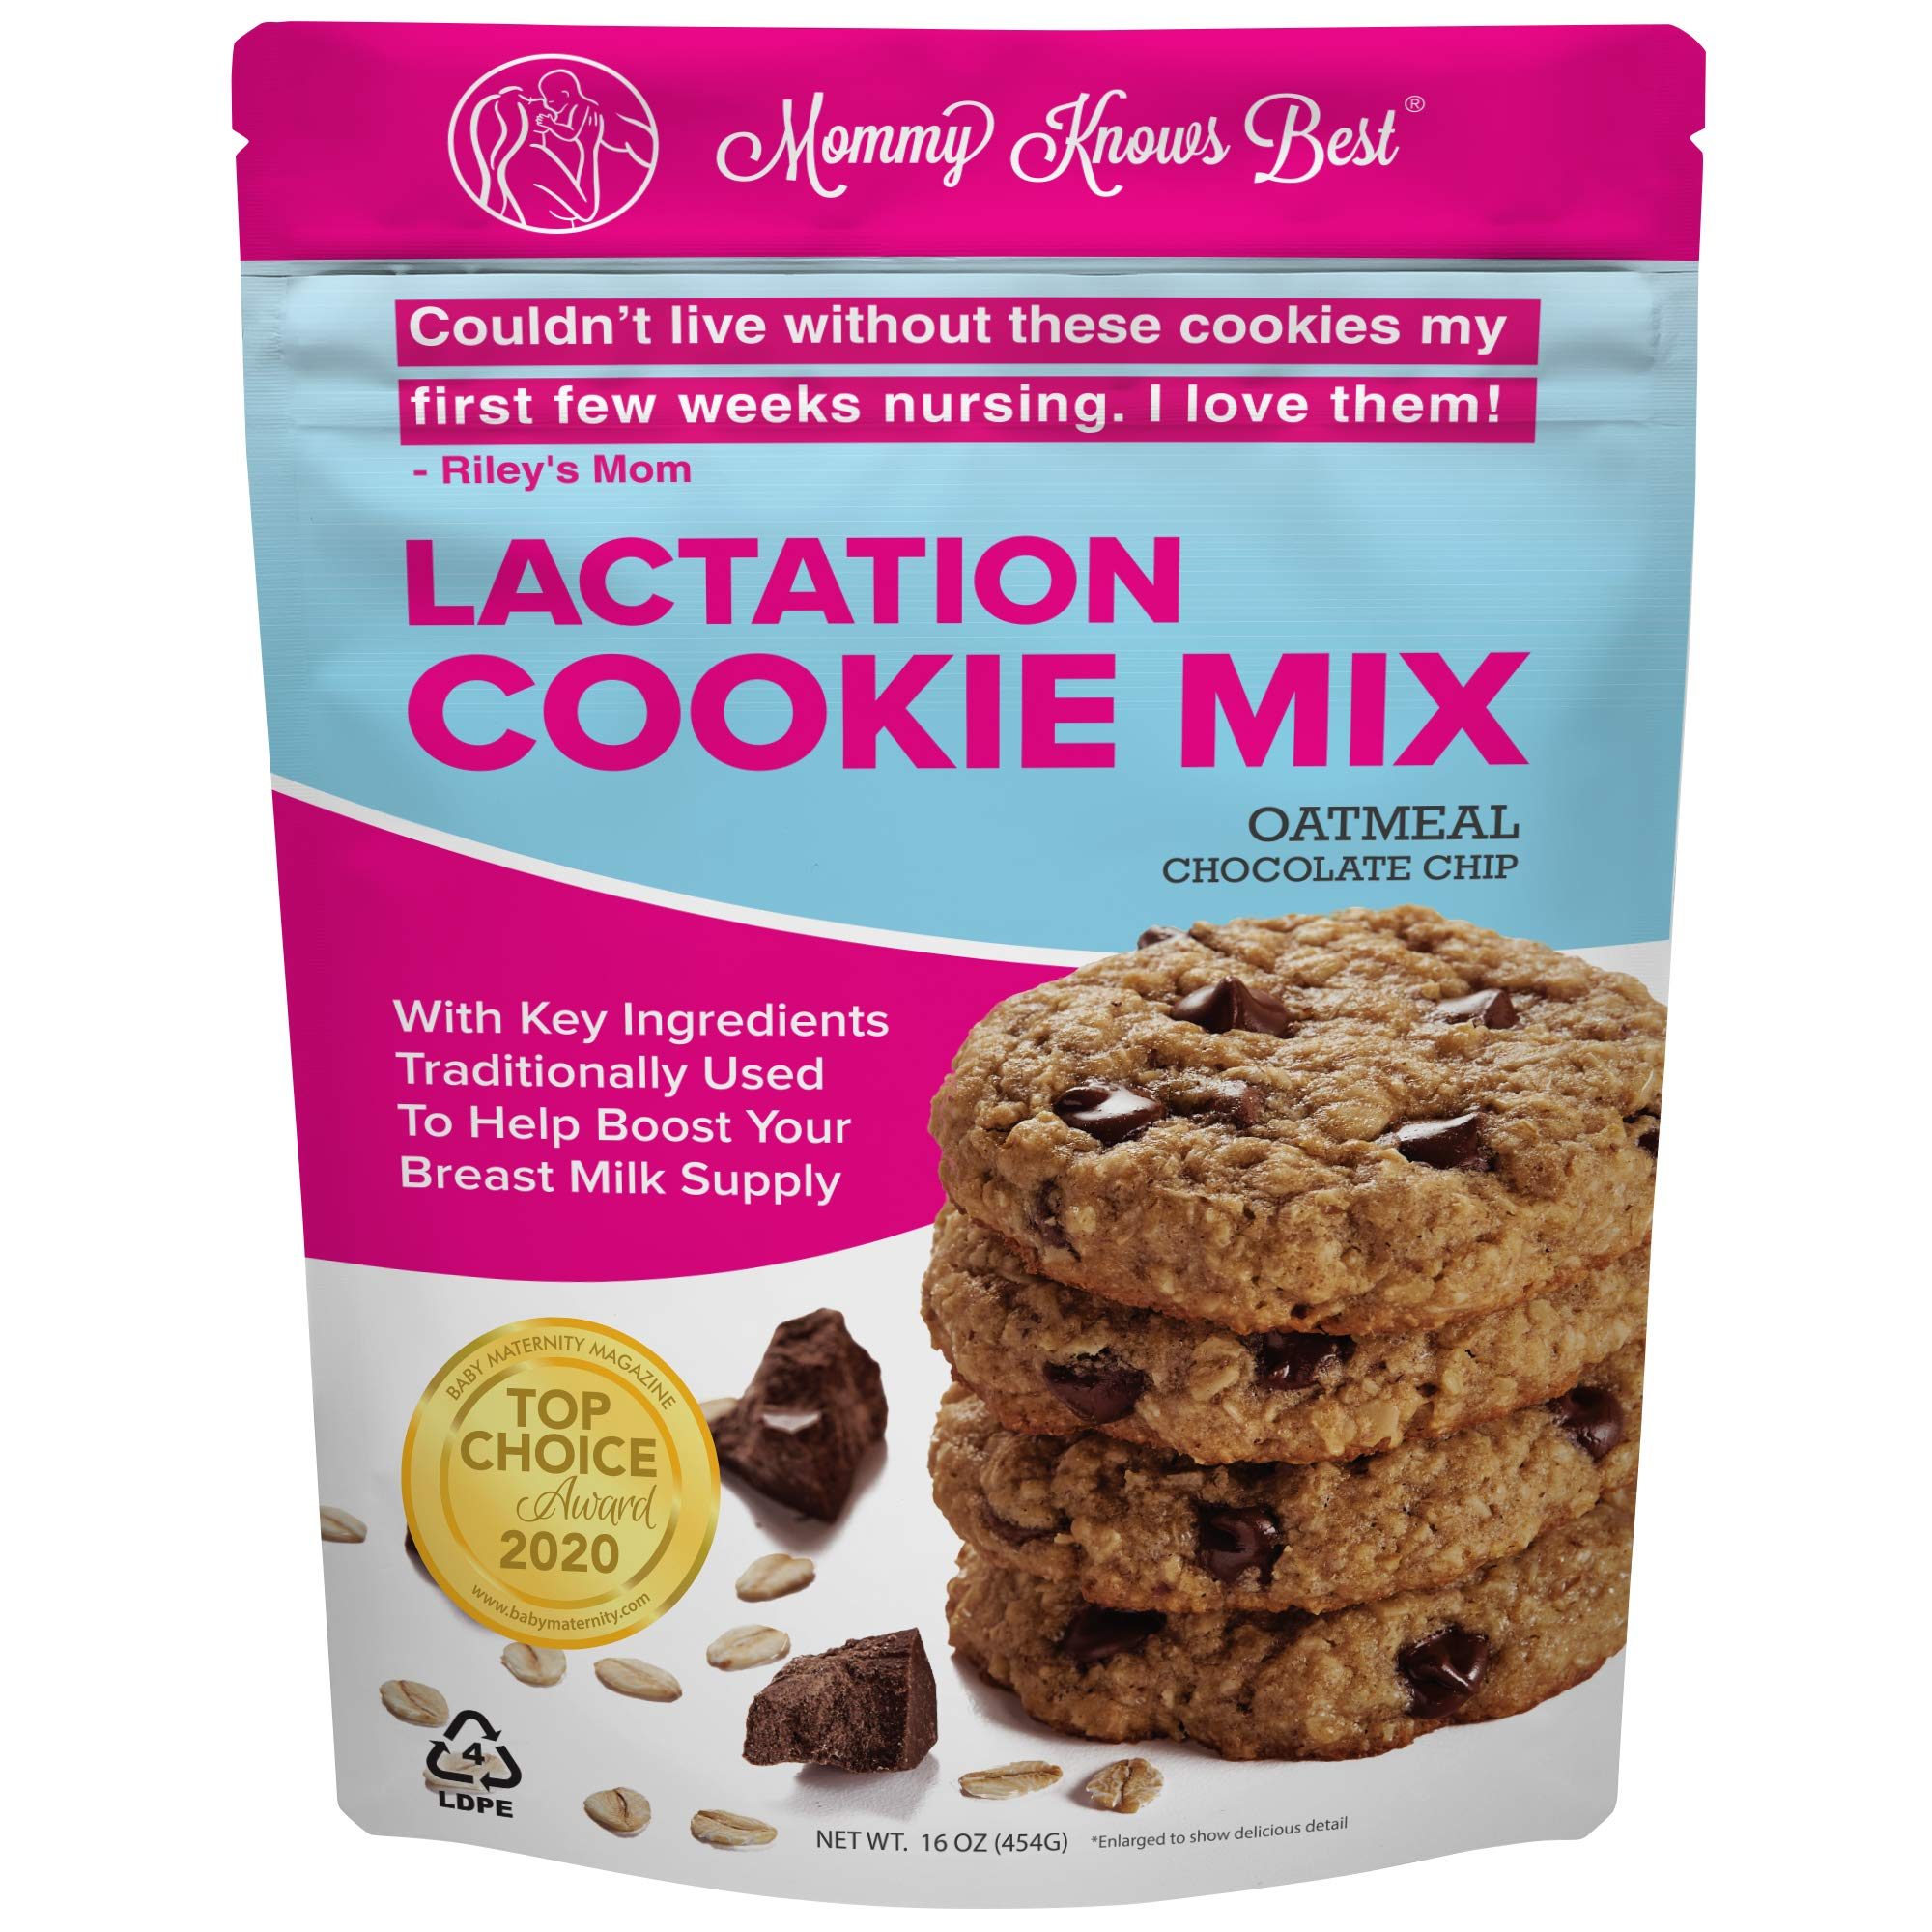 Lactation Cookies Mix - Oatmeal Chocolate Chip Breastfeeding Cookie Supplement Support for Breast Milk Supply Increase - 16 ounces